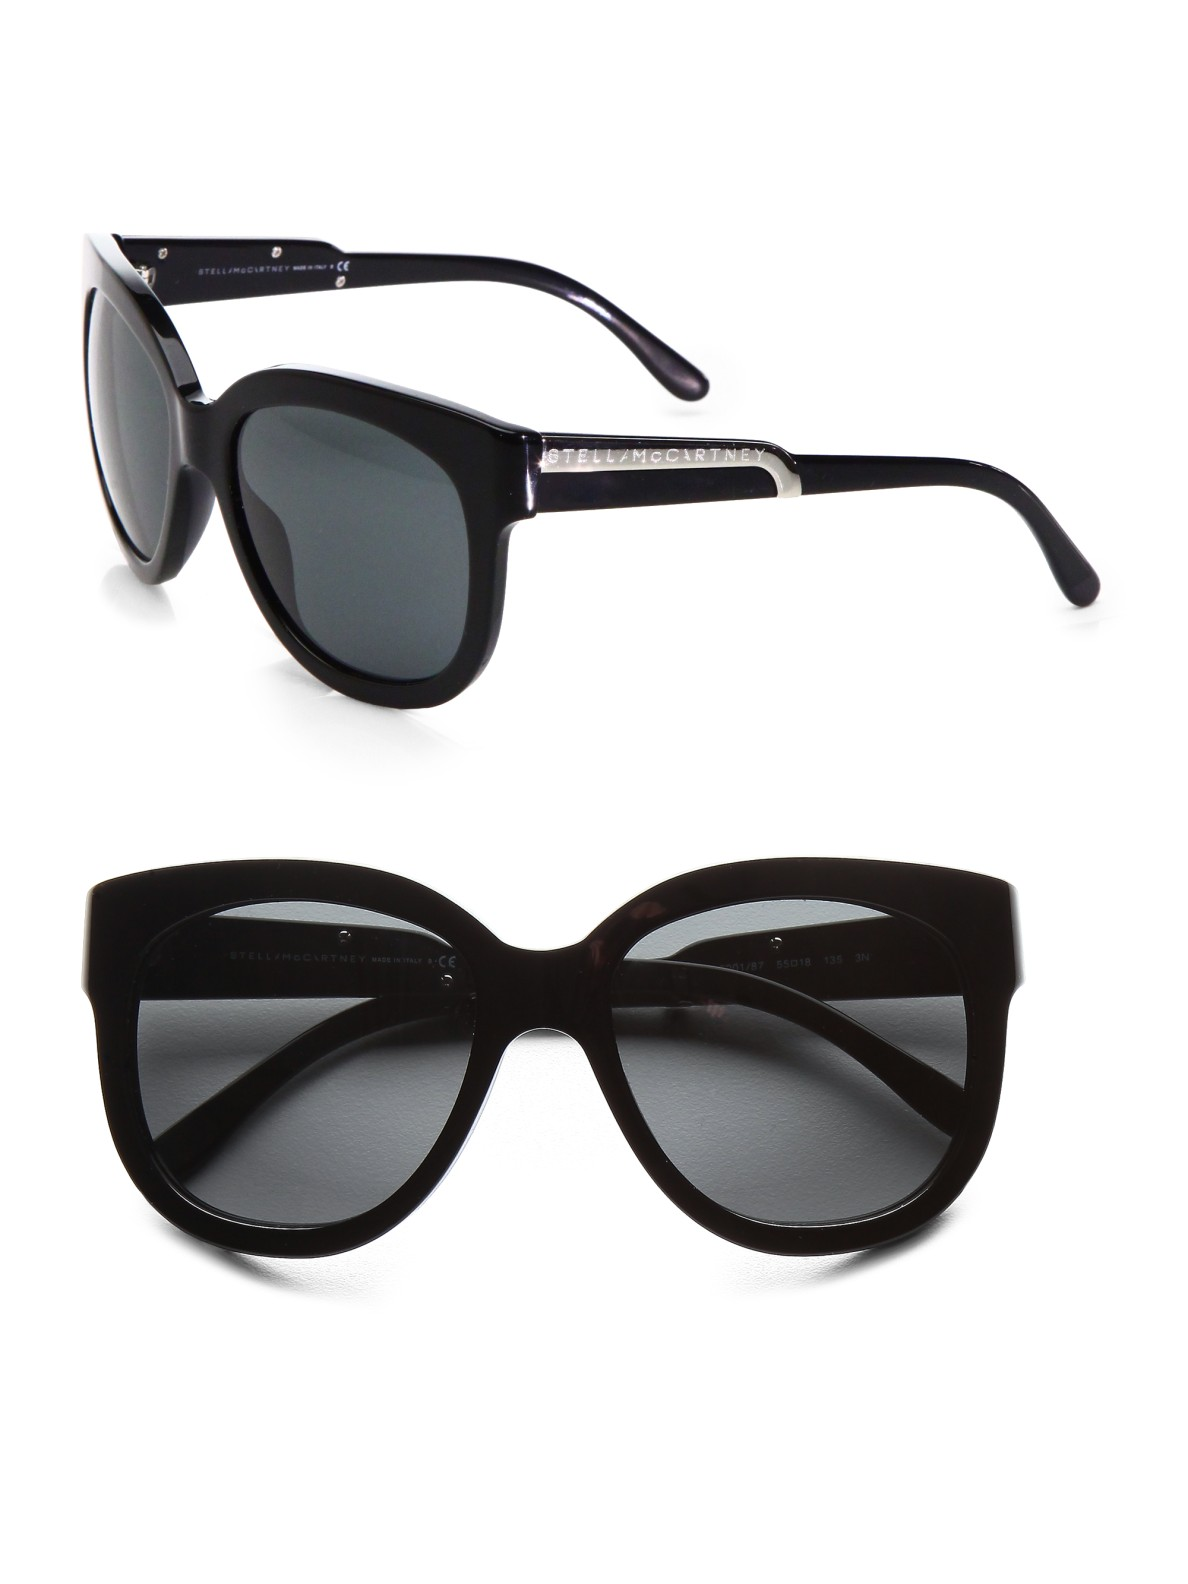 High-Quality Cheap two-tone oversized square sunglasses - Metallic Stella McCartney Wholesale Price Cheap Online Discount Best Seller Discount Cost Outlet Get Authentic Hkp0soQiGN